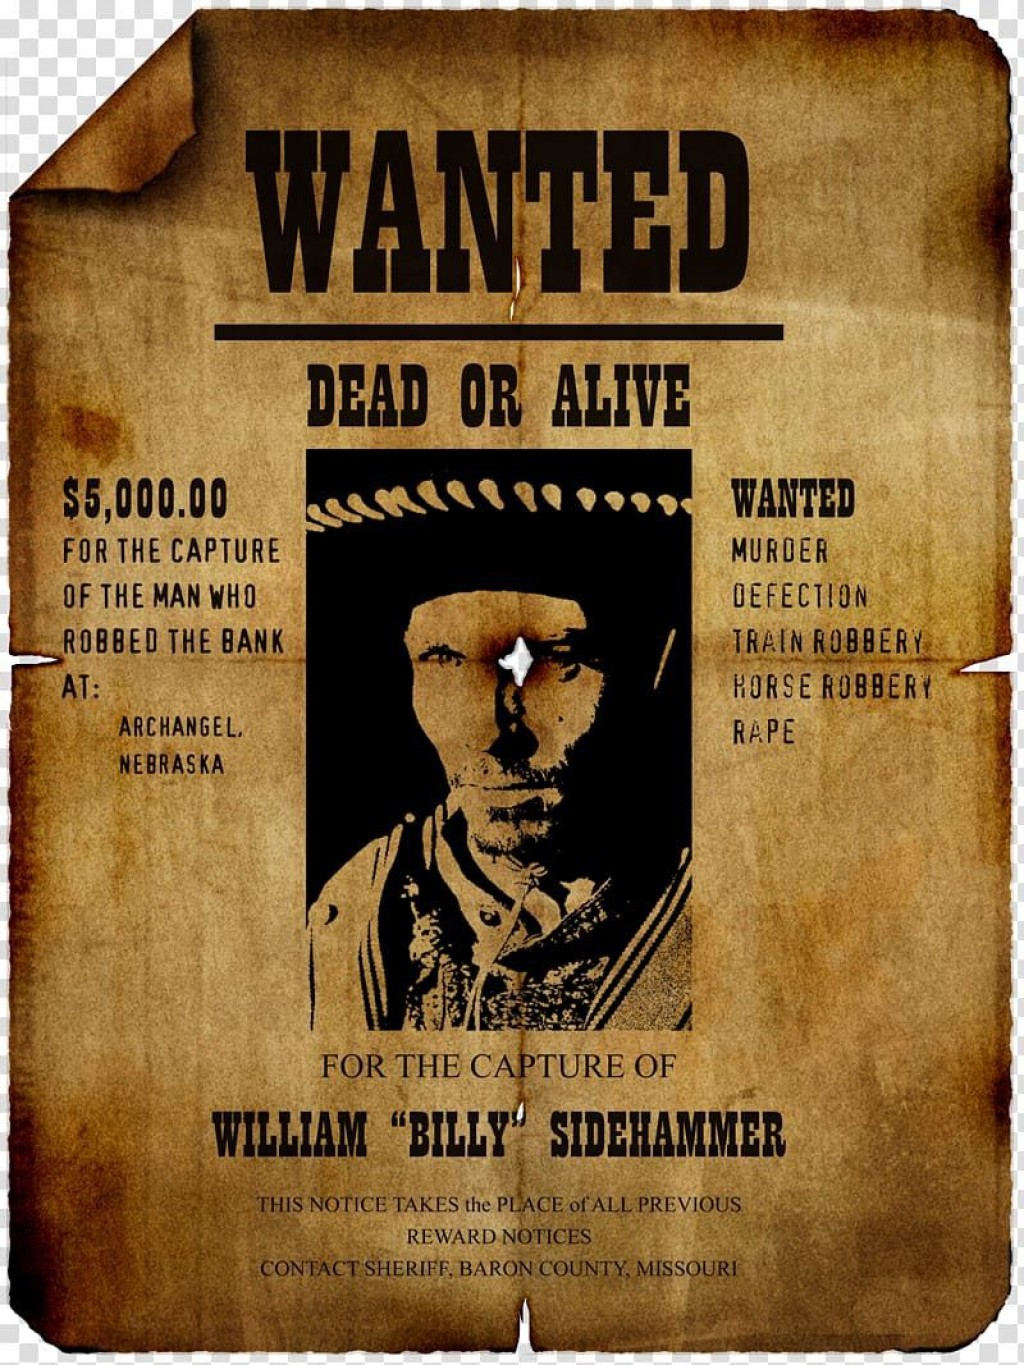 008 Stunning Wanted Poster Template Microsoft Word High Resolution  Western MostLarge